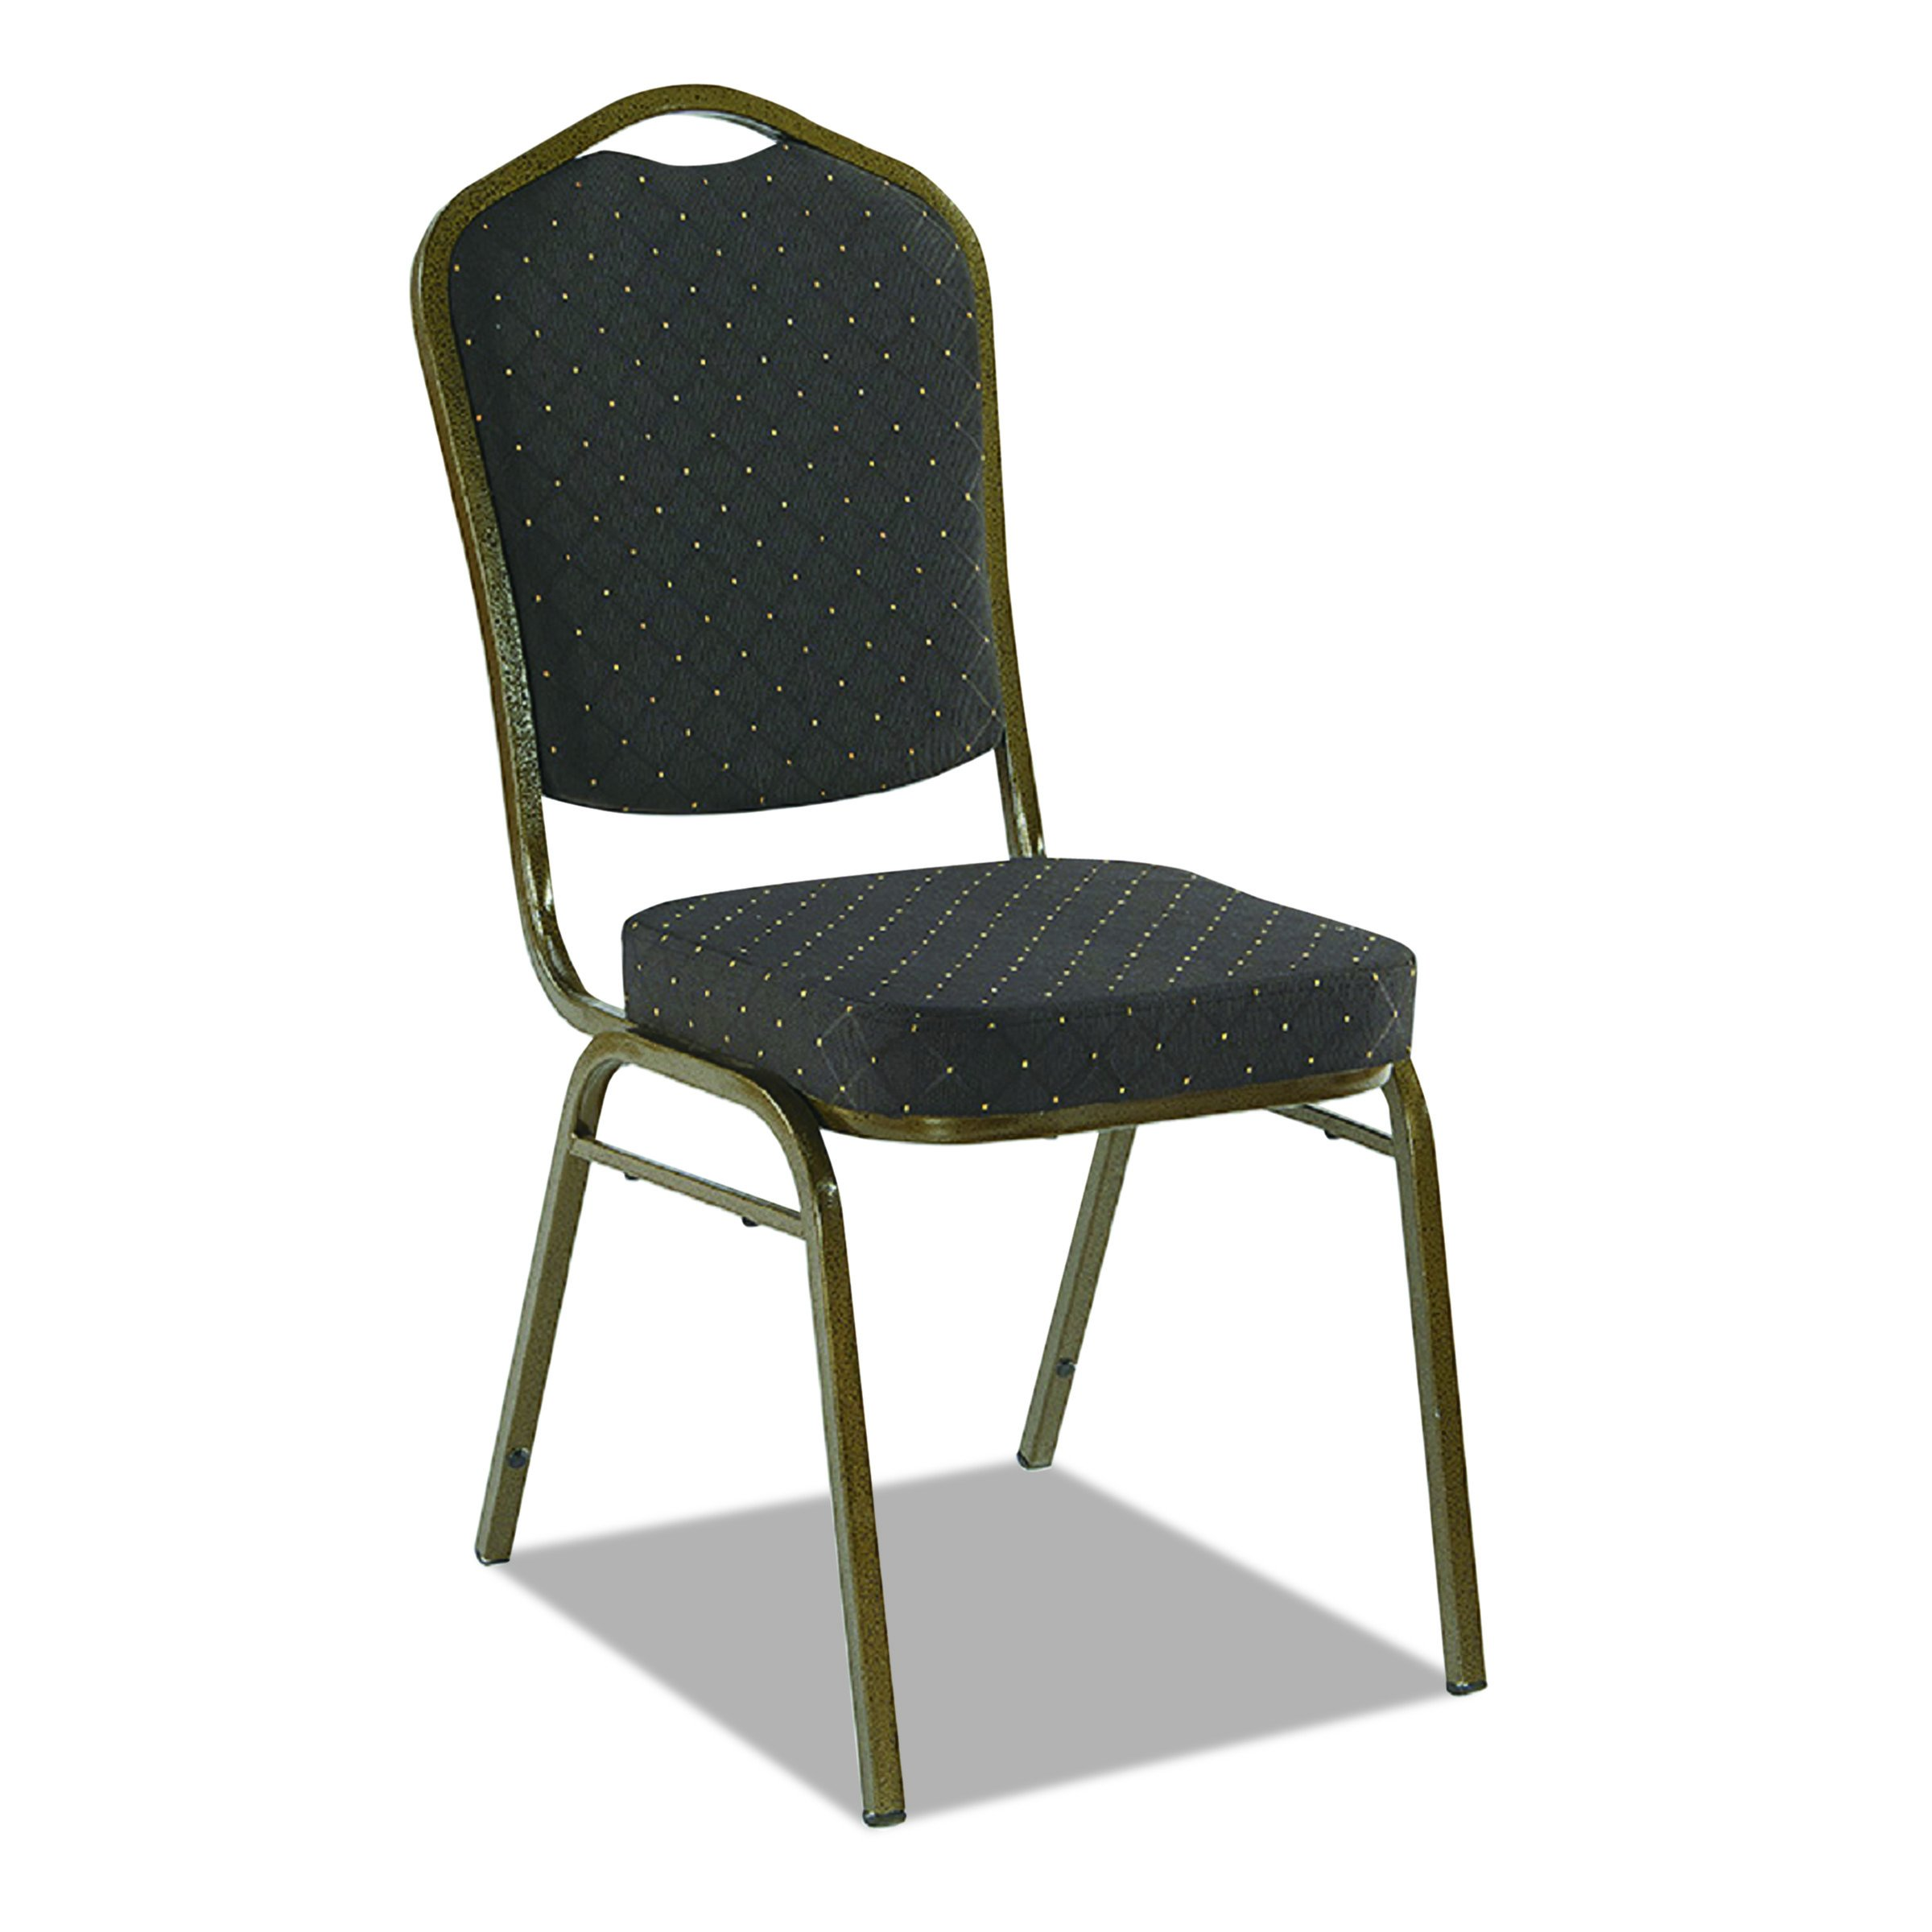 Iceberg 66123 Banquet Chair, 4-Pack, Crown, Black Pattern/Gold Vein Frame (Made in USA)